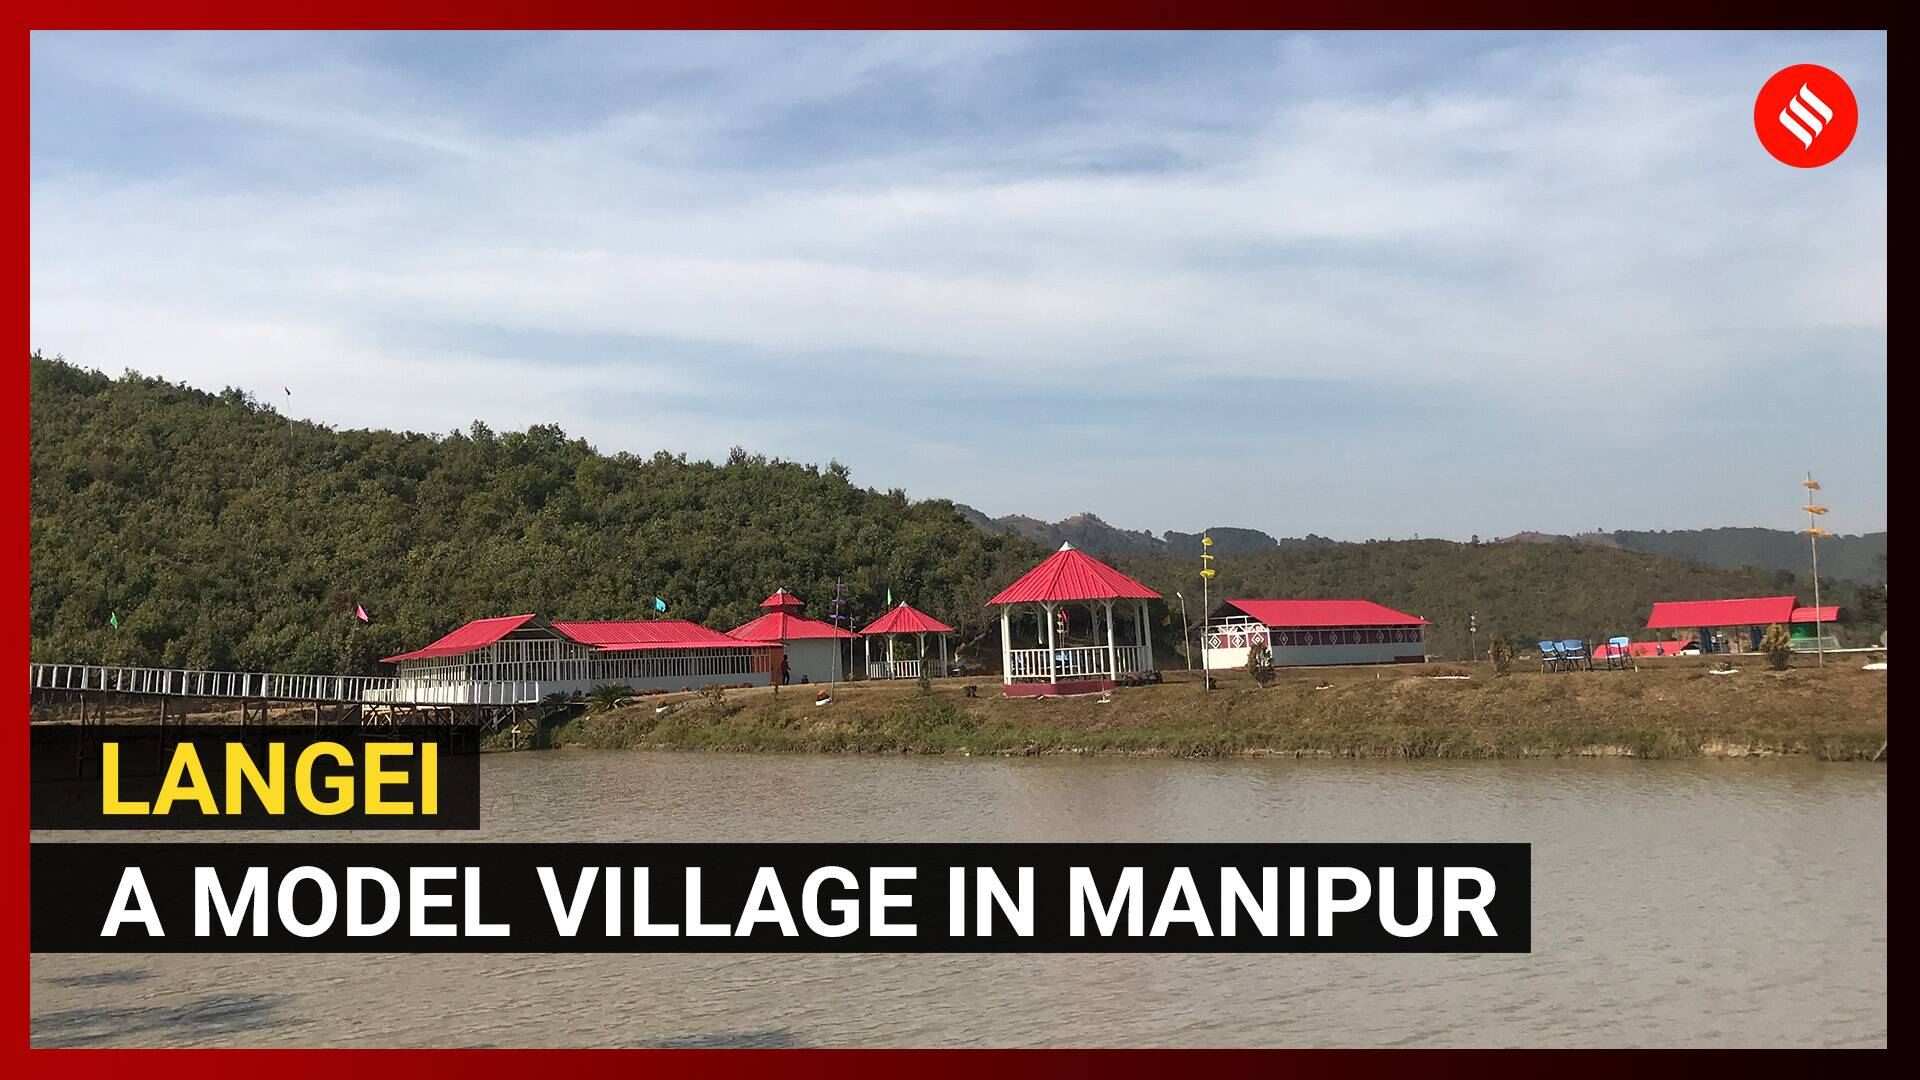 Road to a Model Village: The Manipur's Langei Village Has It All